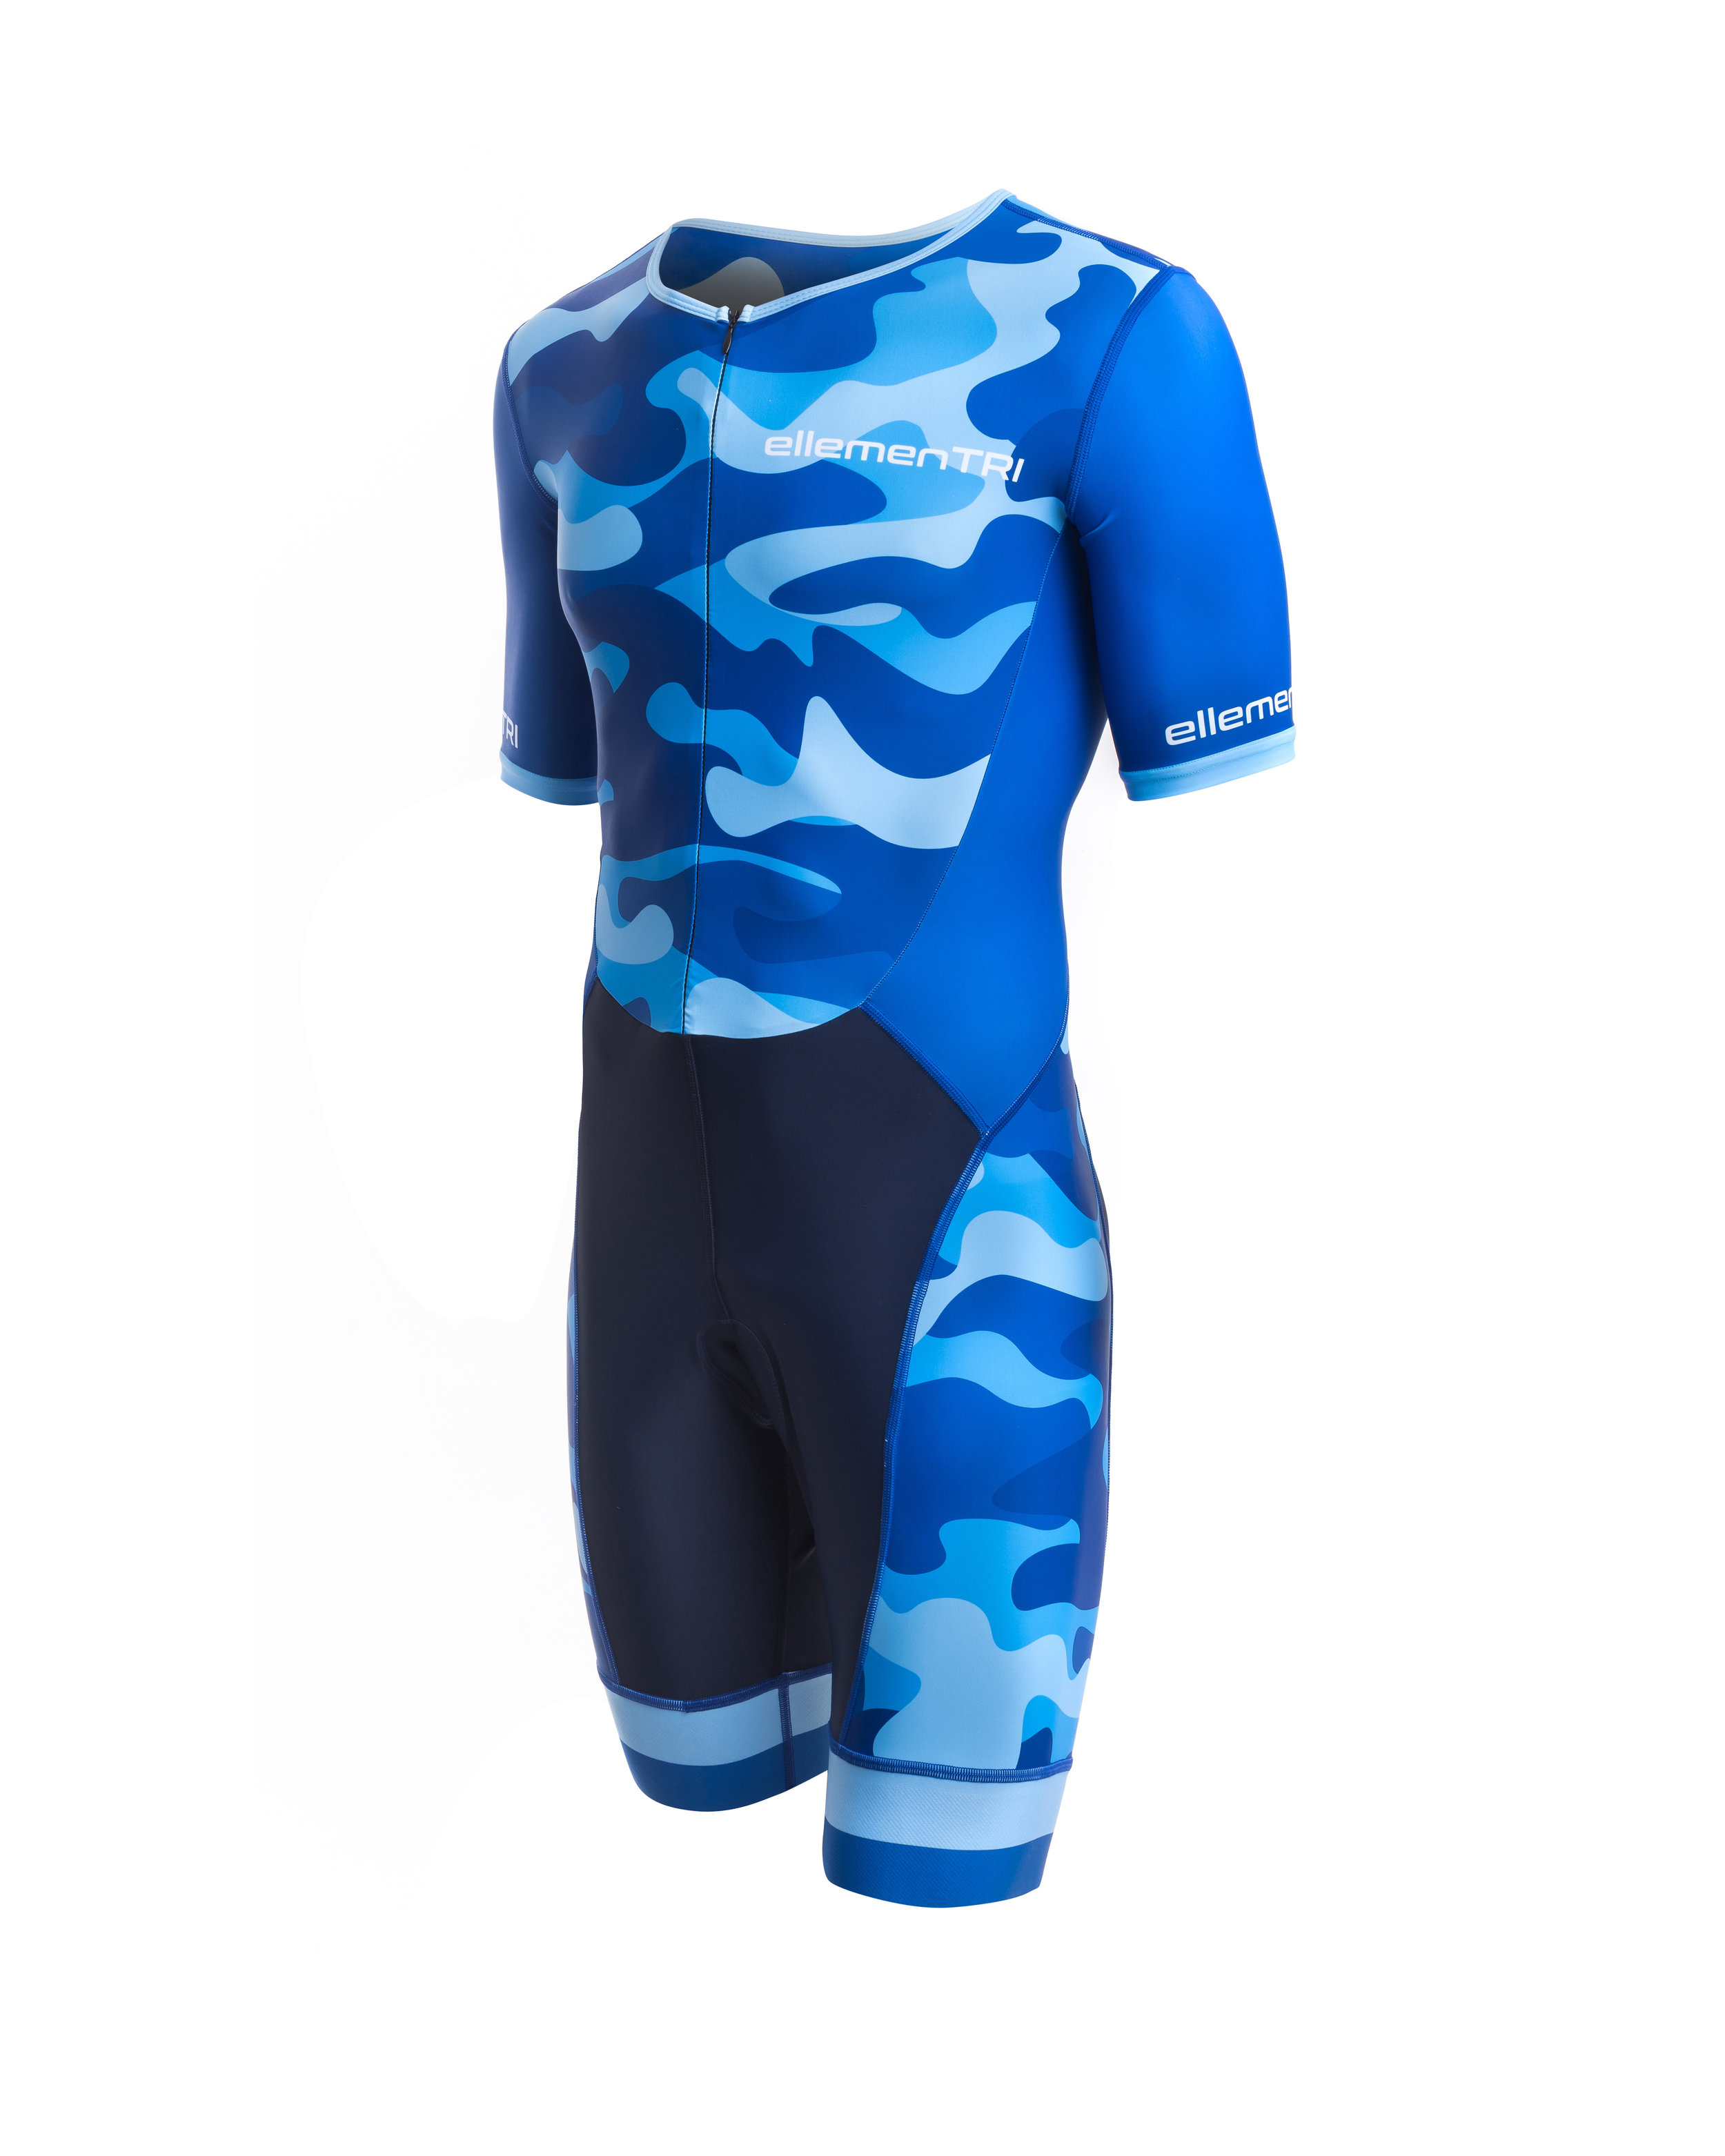 ellementri mens Cammo  triathlon Tri Suit